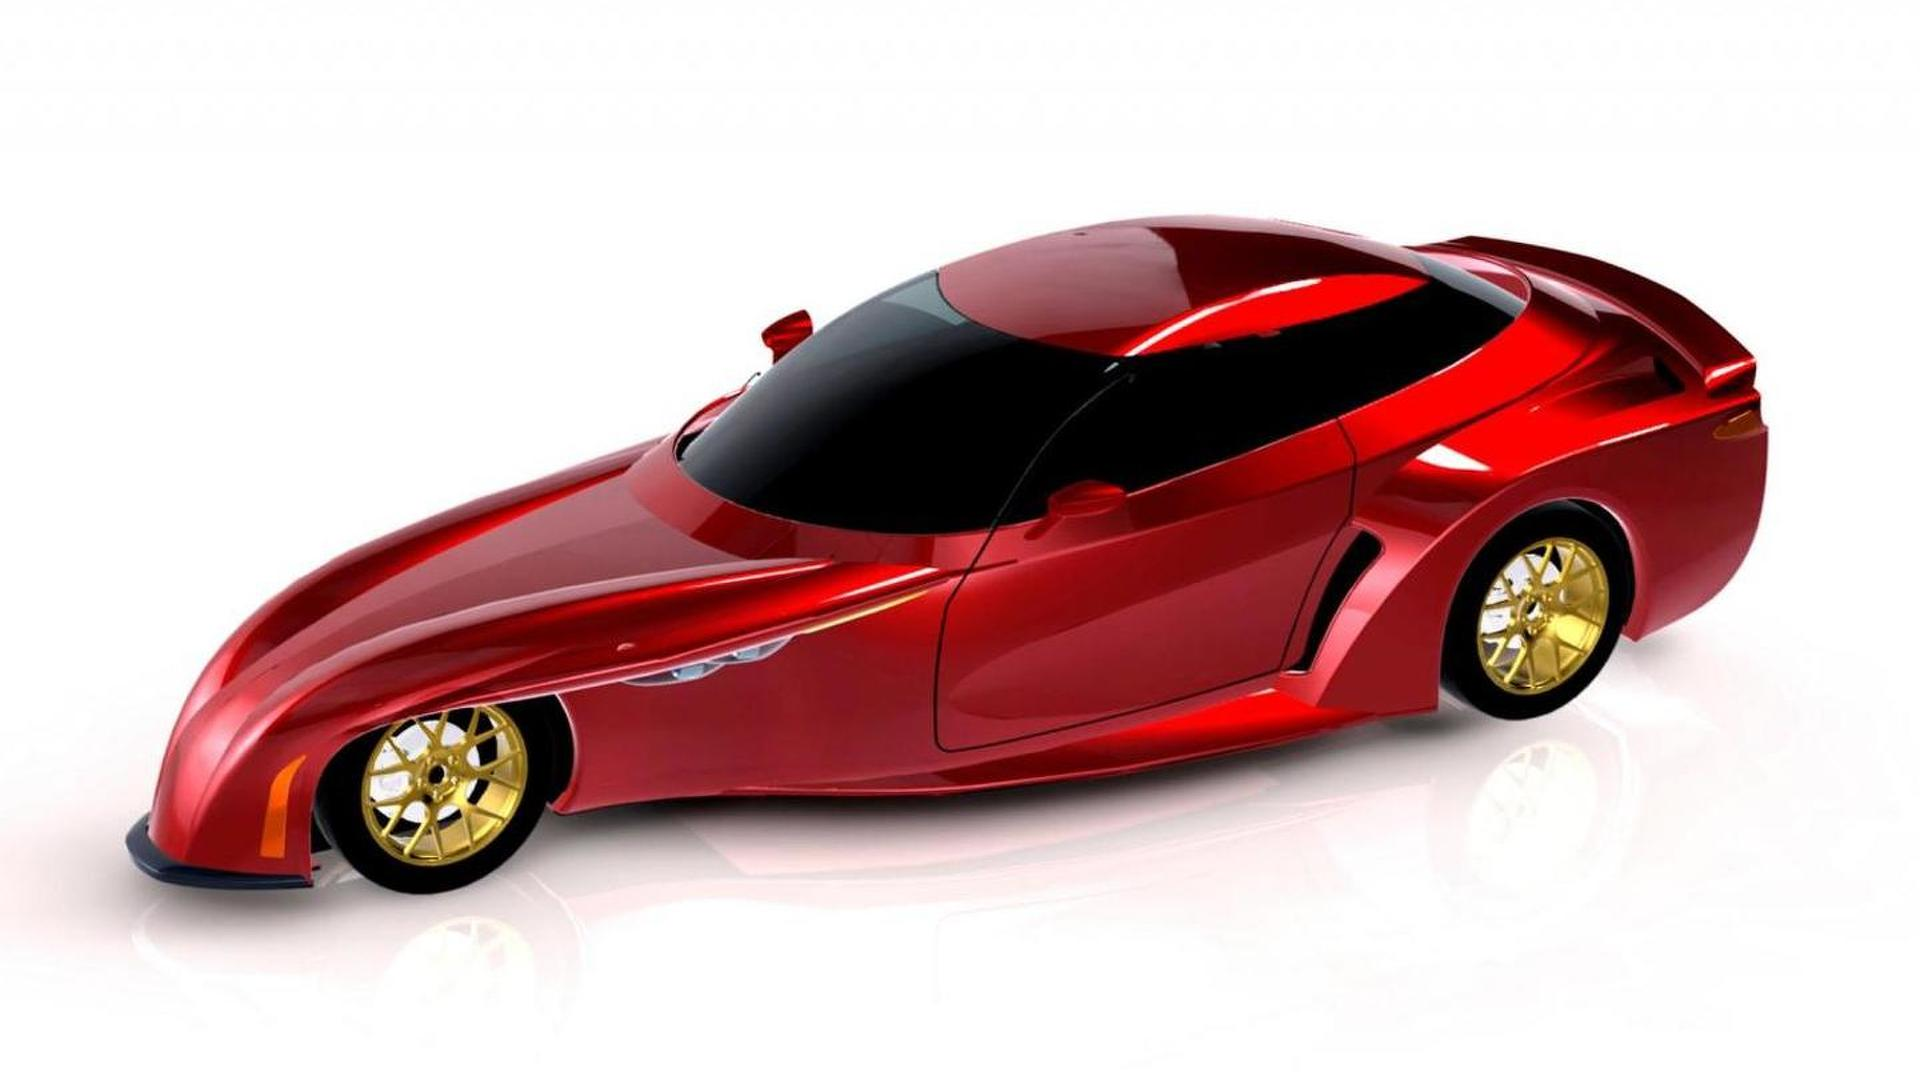 DeltaWing Technologies shows off a road-going model, wants to partner with automakers